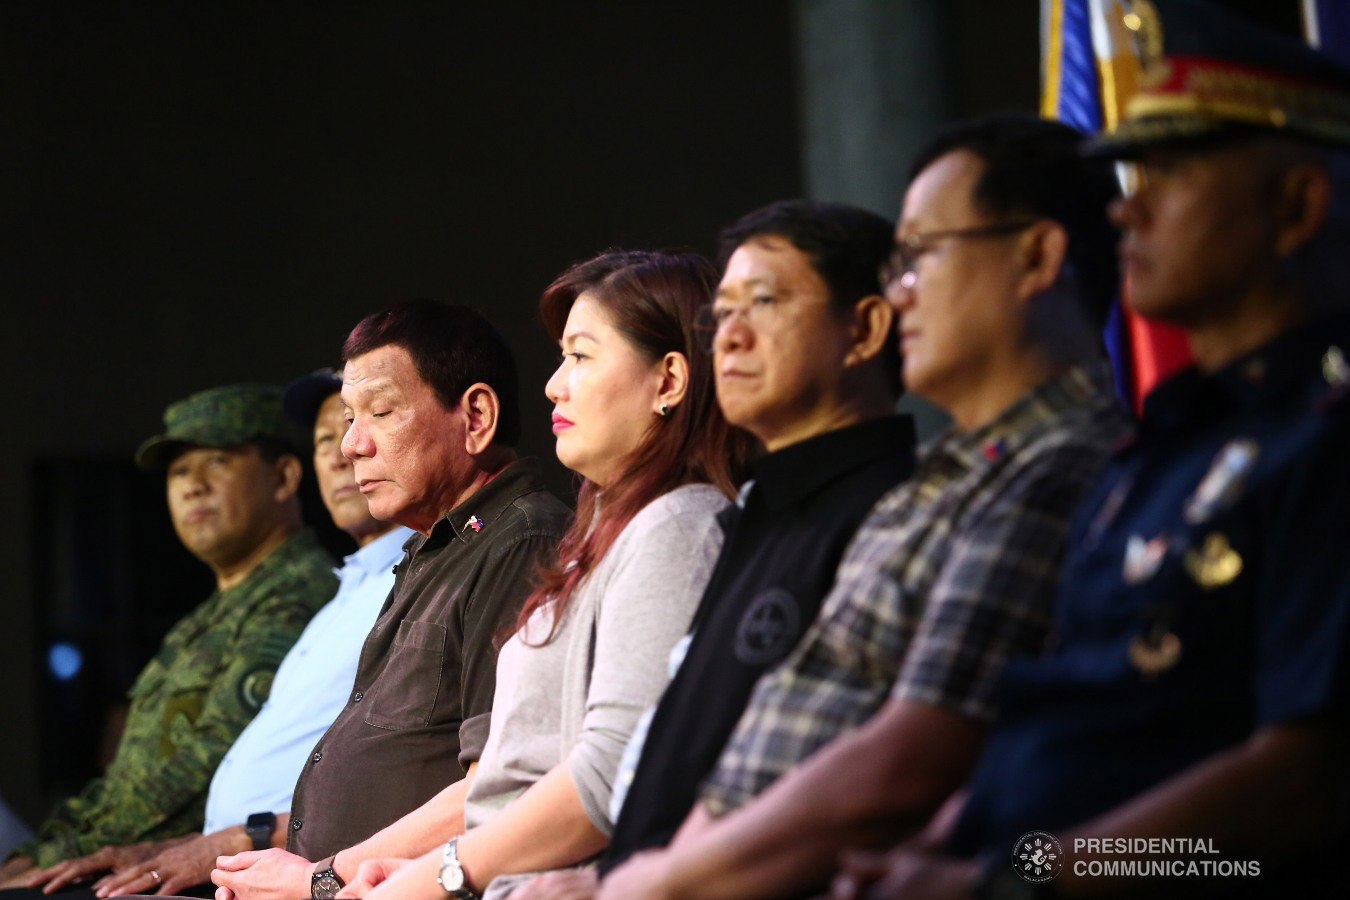 """President Rodrigo Roa Duterte witnesses the program proper during the ceremonial turnover of housing units to wounded police officers and soldiers at the at the Pleasant View Residences in the City of San Jose del Monte, Bulacan on January 10, 2019. Joining the President on stage are Armed Forces of the Philippines Chief of Staff General Benjamin Madrigal, Defense Secretary Delfin Lorenzana, Ms. Cielito """"Honeylet"""" Avanceña, Interior and Local Government Secretary Eduardo Año, Housing and Urban Development Coordinating Council Chair Eduardo del Rosario, and Philippine National Police Director General Oscar Albayalde. REY BANIQUET/PRESIDENTIAL PHOTO"""